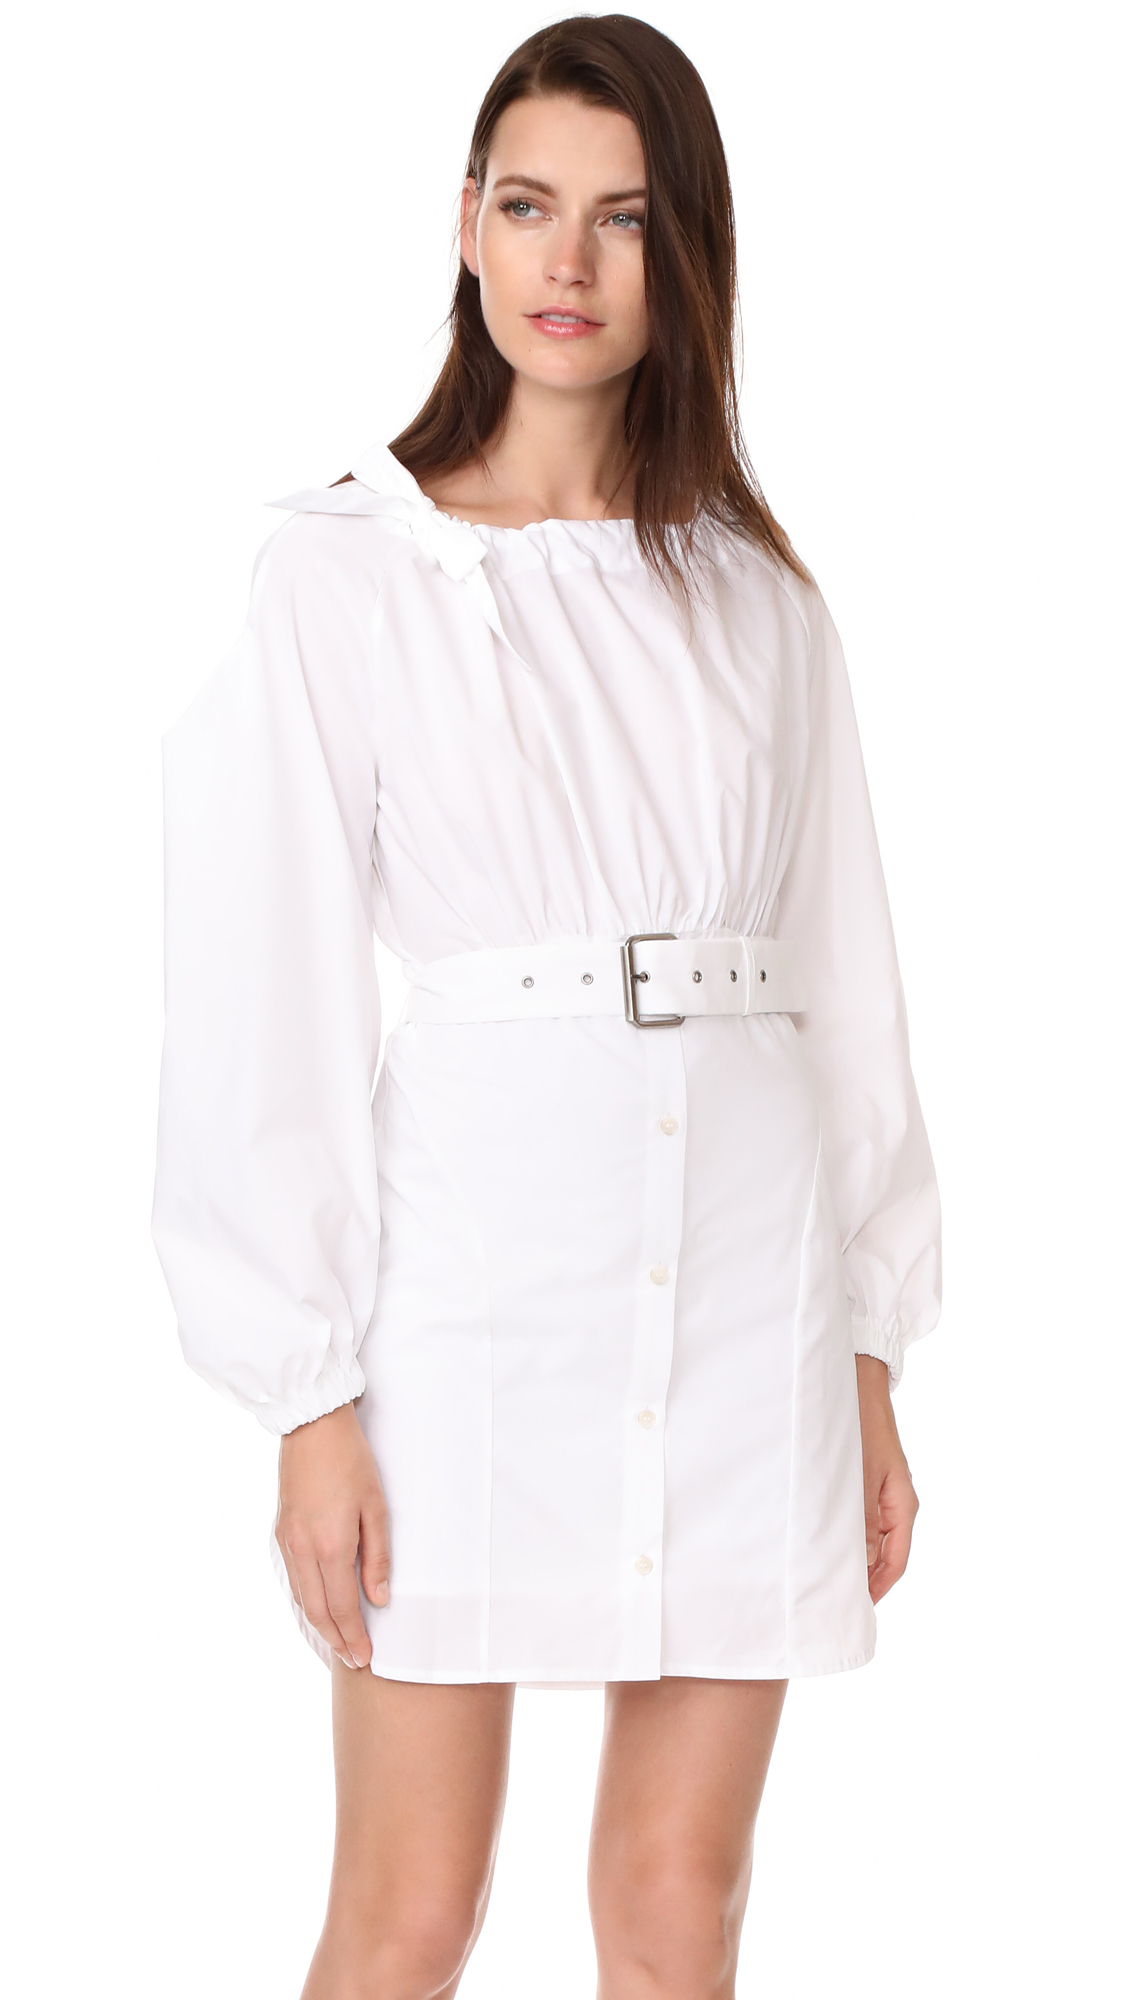 Rachel Comey Undone Two Way Dress - White